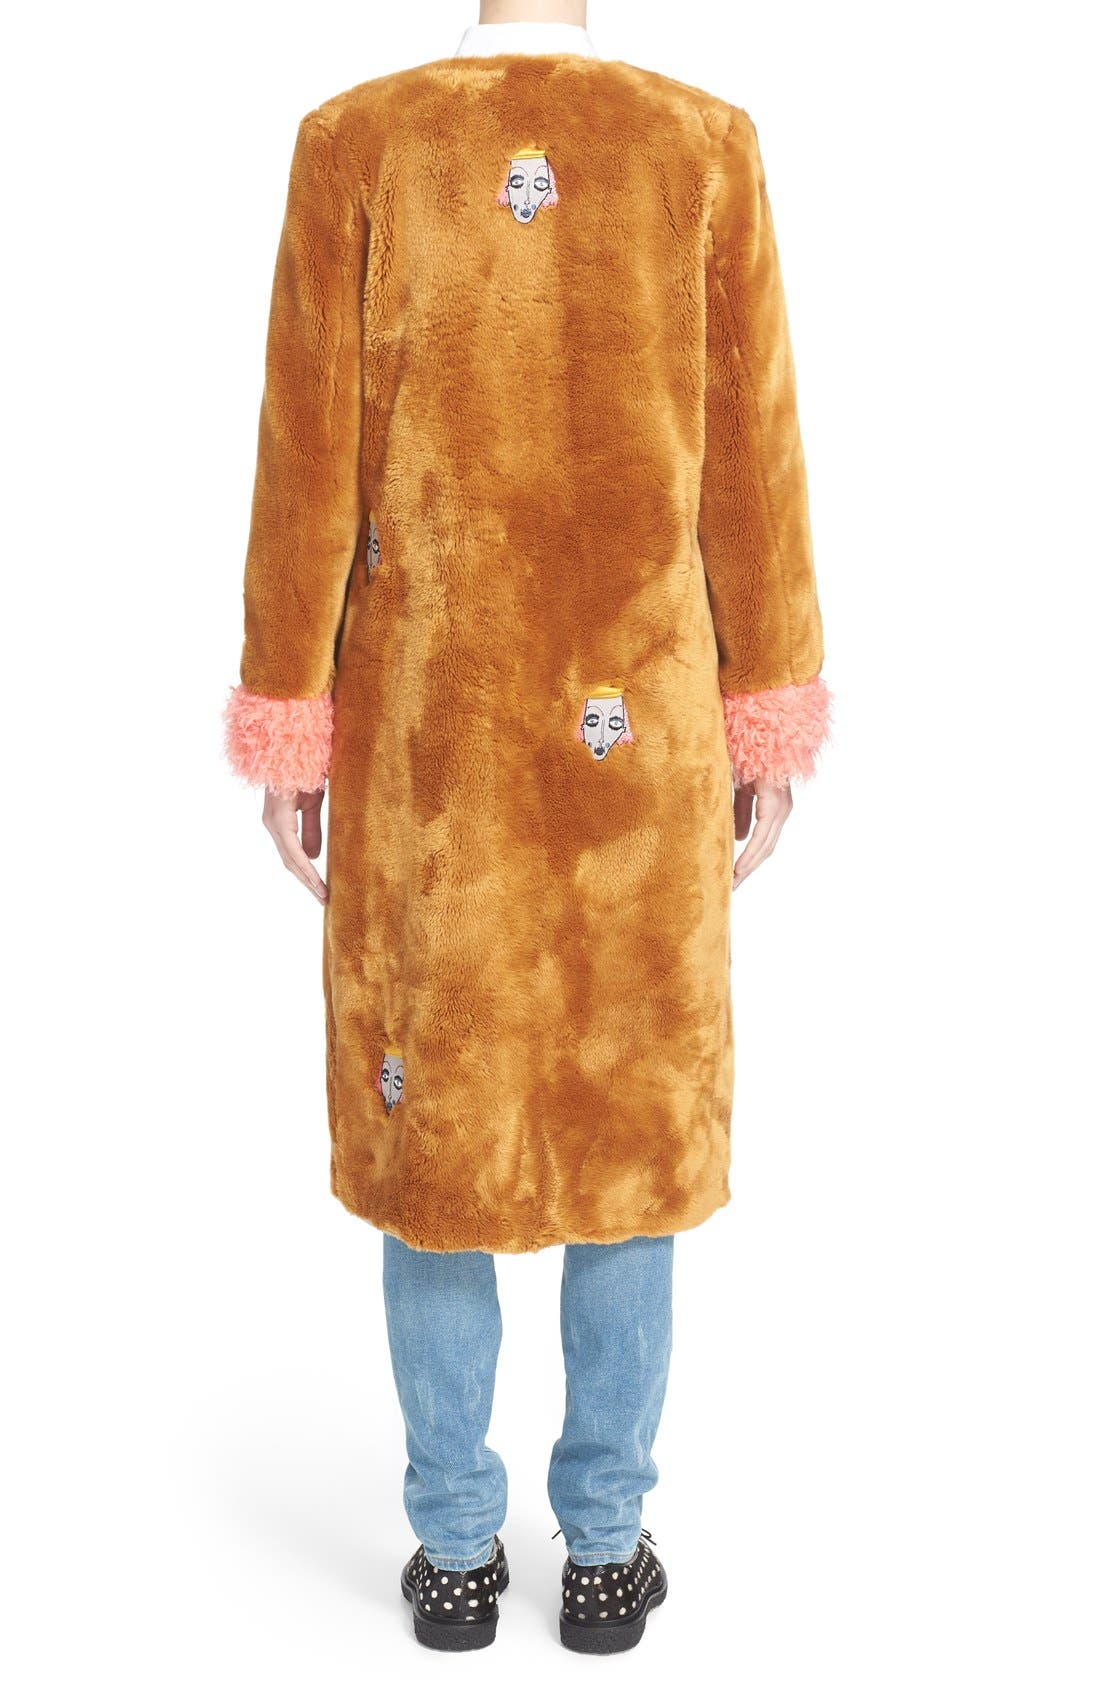 'Frenchie' Faux Fur Coat with Patches,                             Alternate thumbnail 2, color,                             240